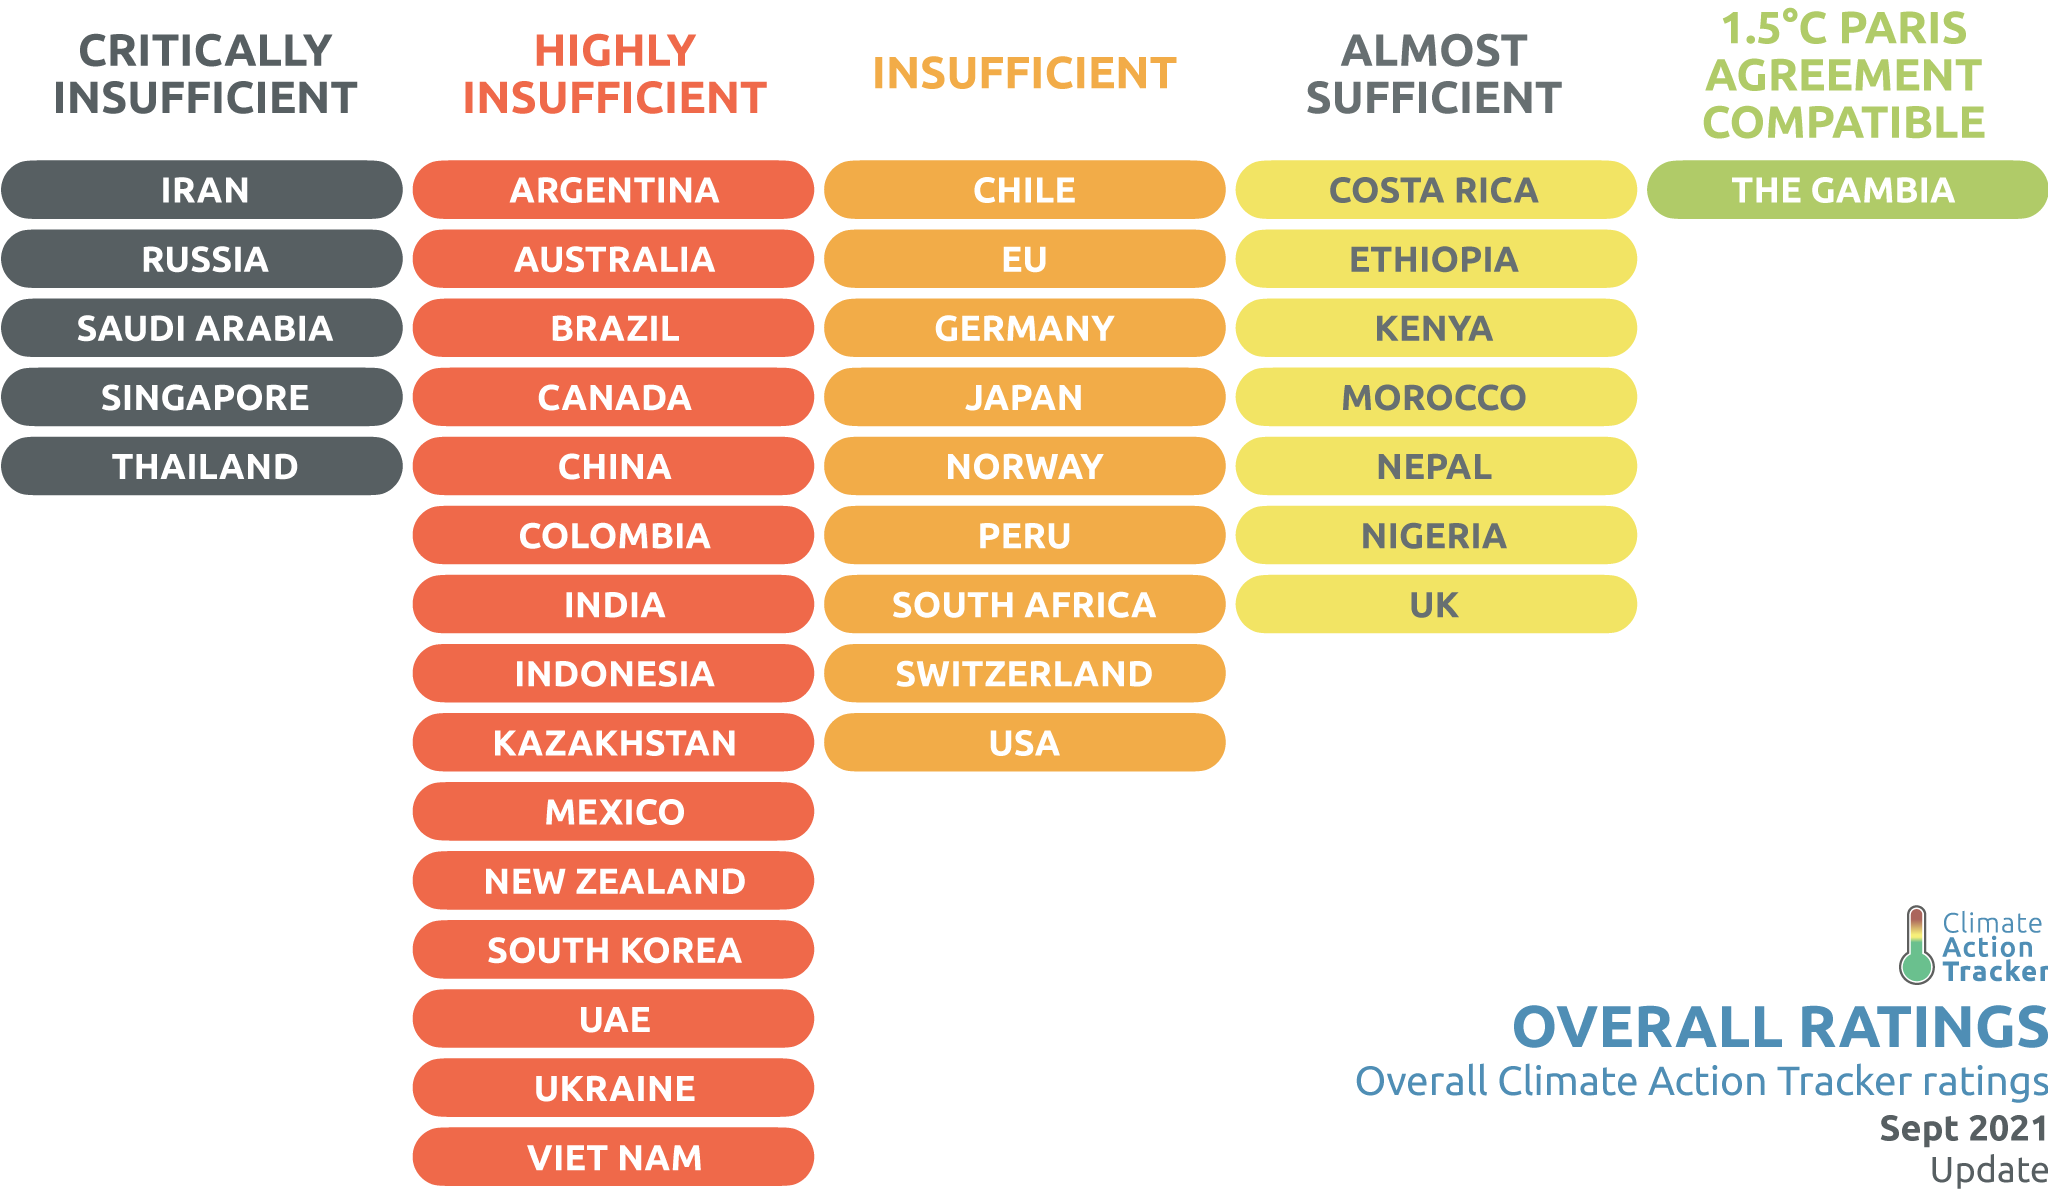 Climate Action Tracker overall ratings